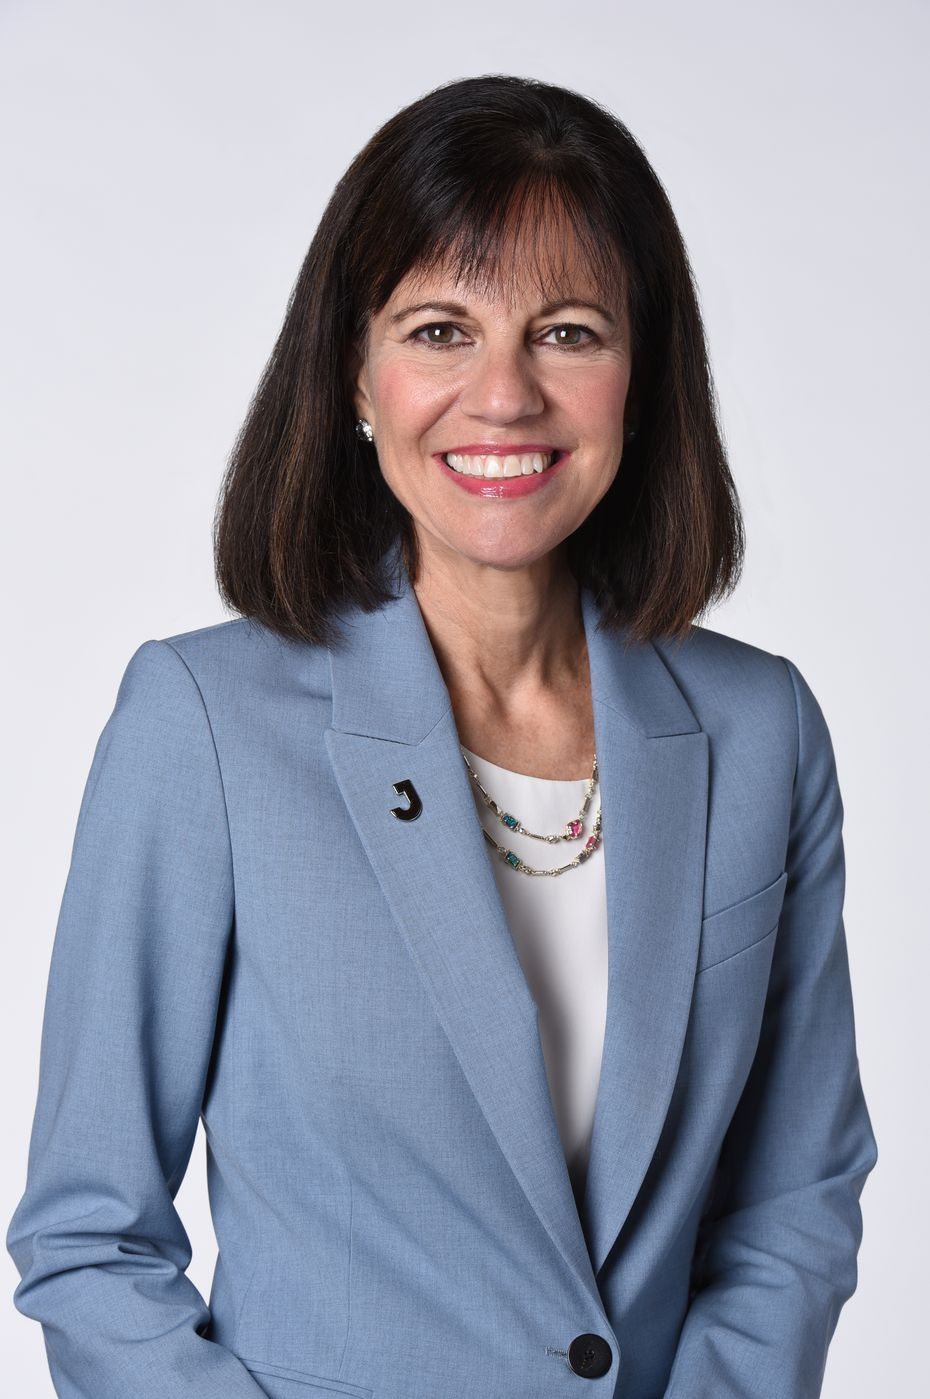 Joanne Caruso is executive vice president and chief legal and administrative officer of Jacobs Engineering Group